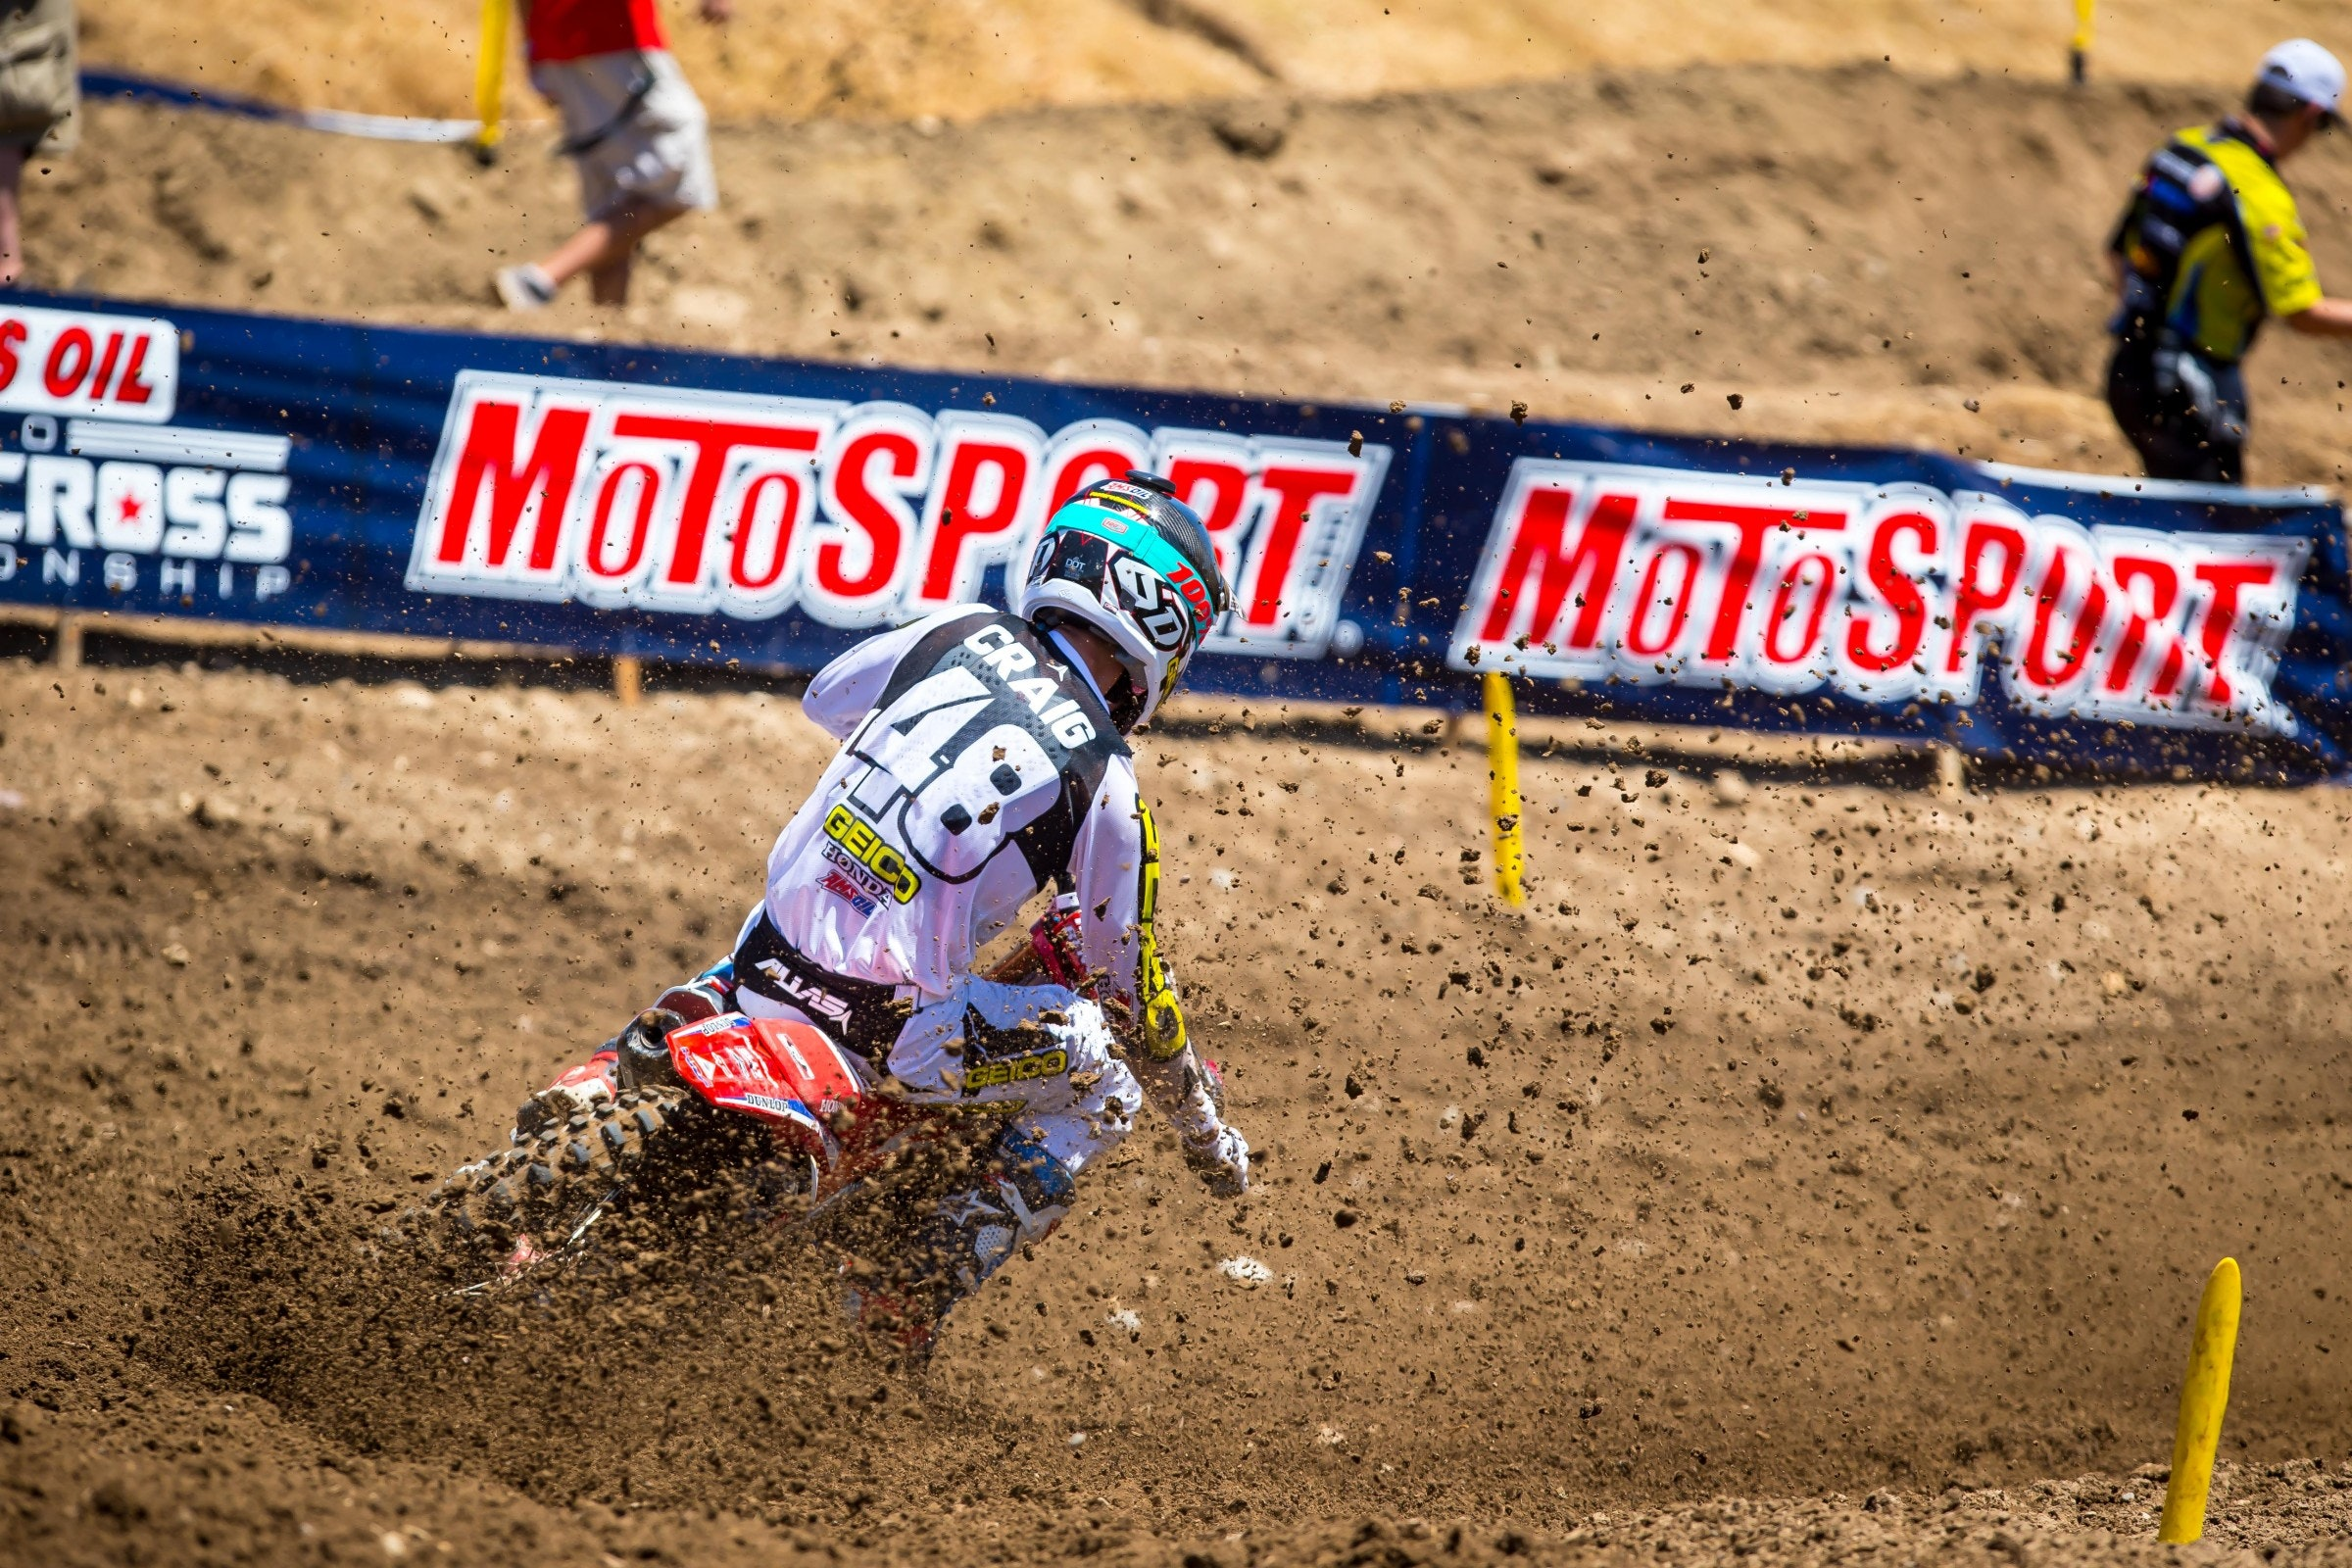 Christian Craig holeshot the first 450 moto but got cross rutted and went down early.